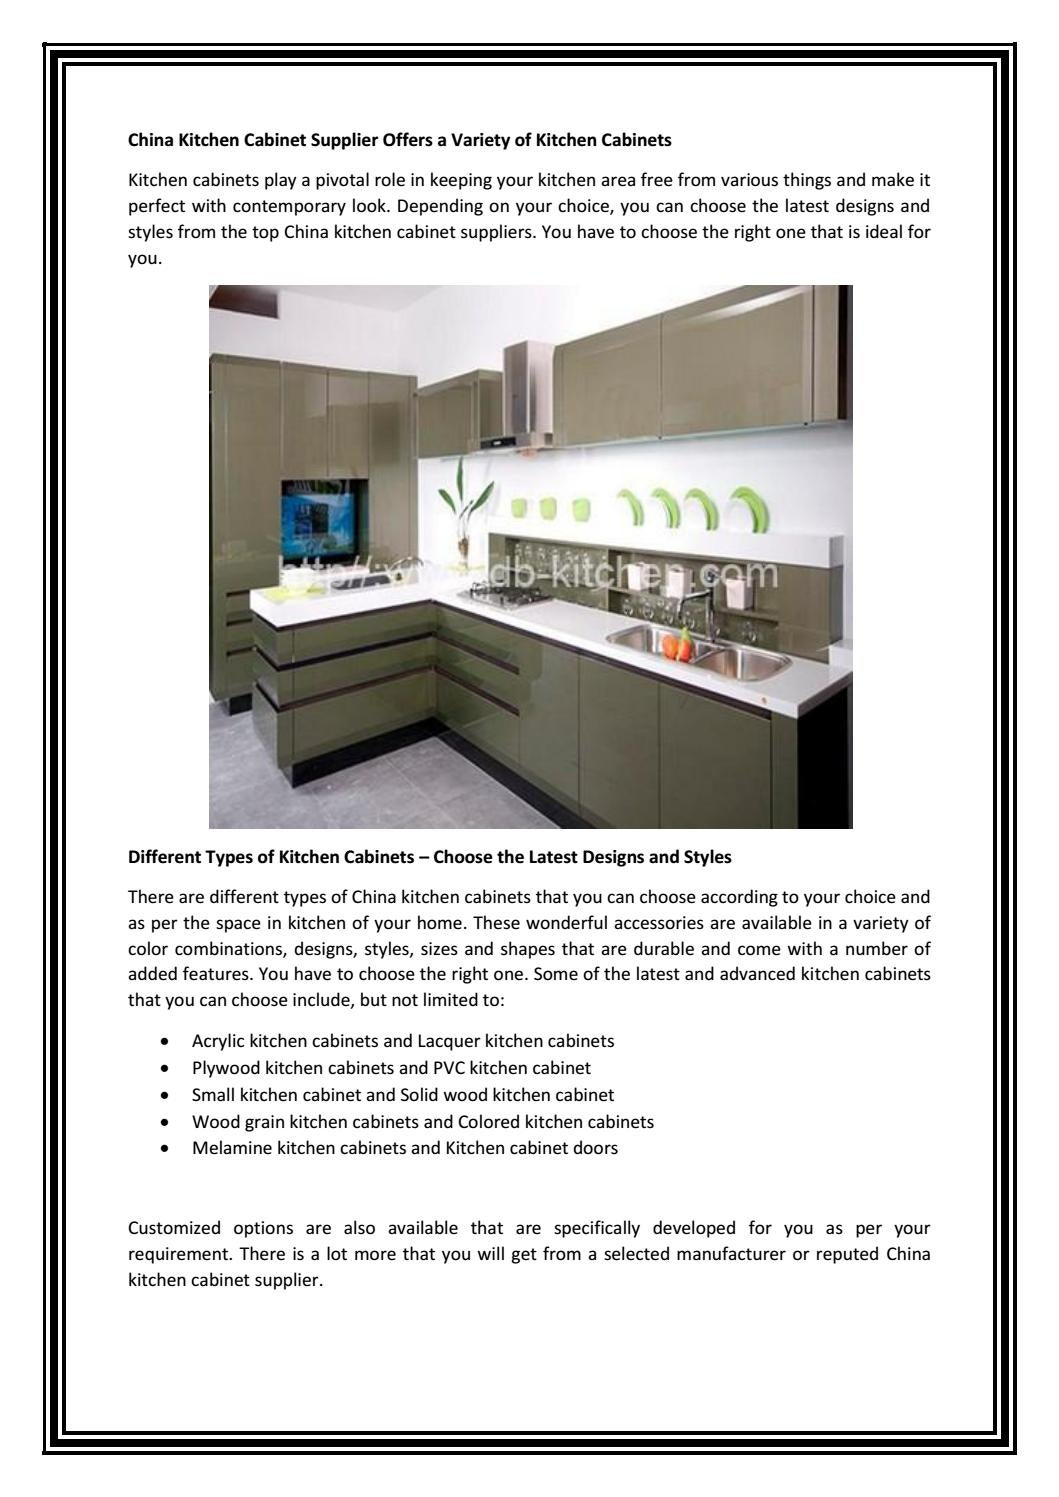 China Kitchen Cabinet Supplier Offers A Variety Of Cabinets By Dabankitchen Issuu